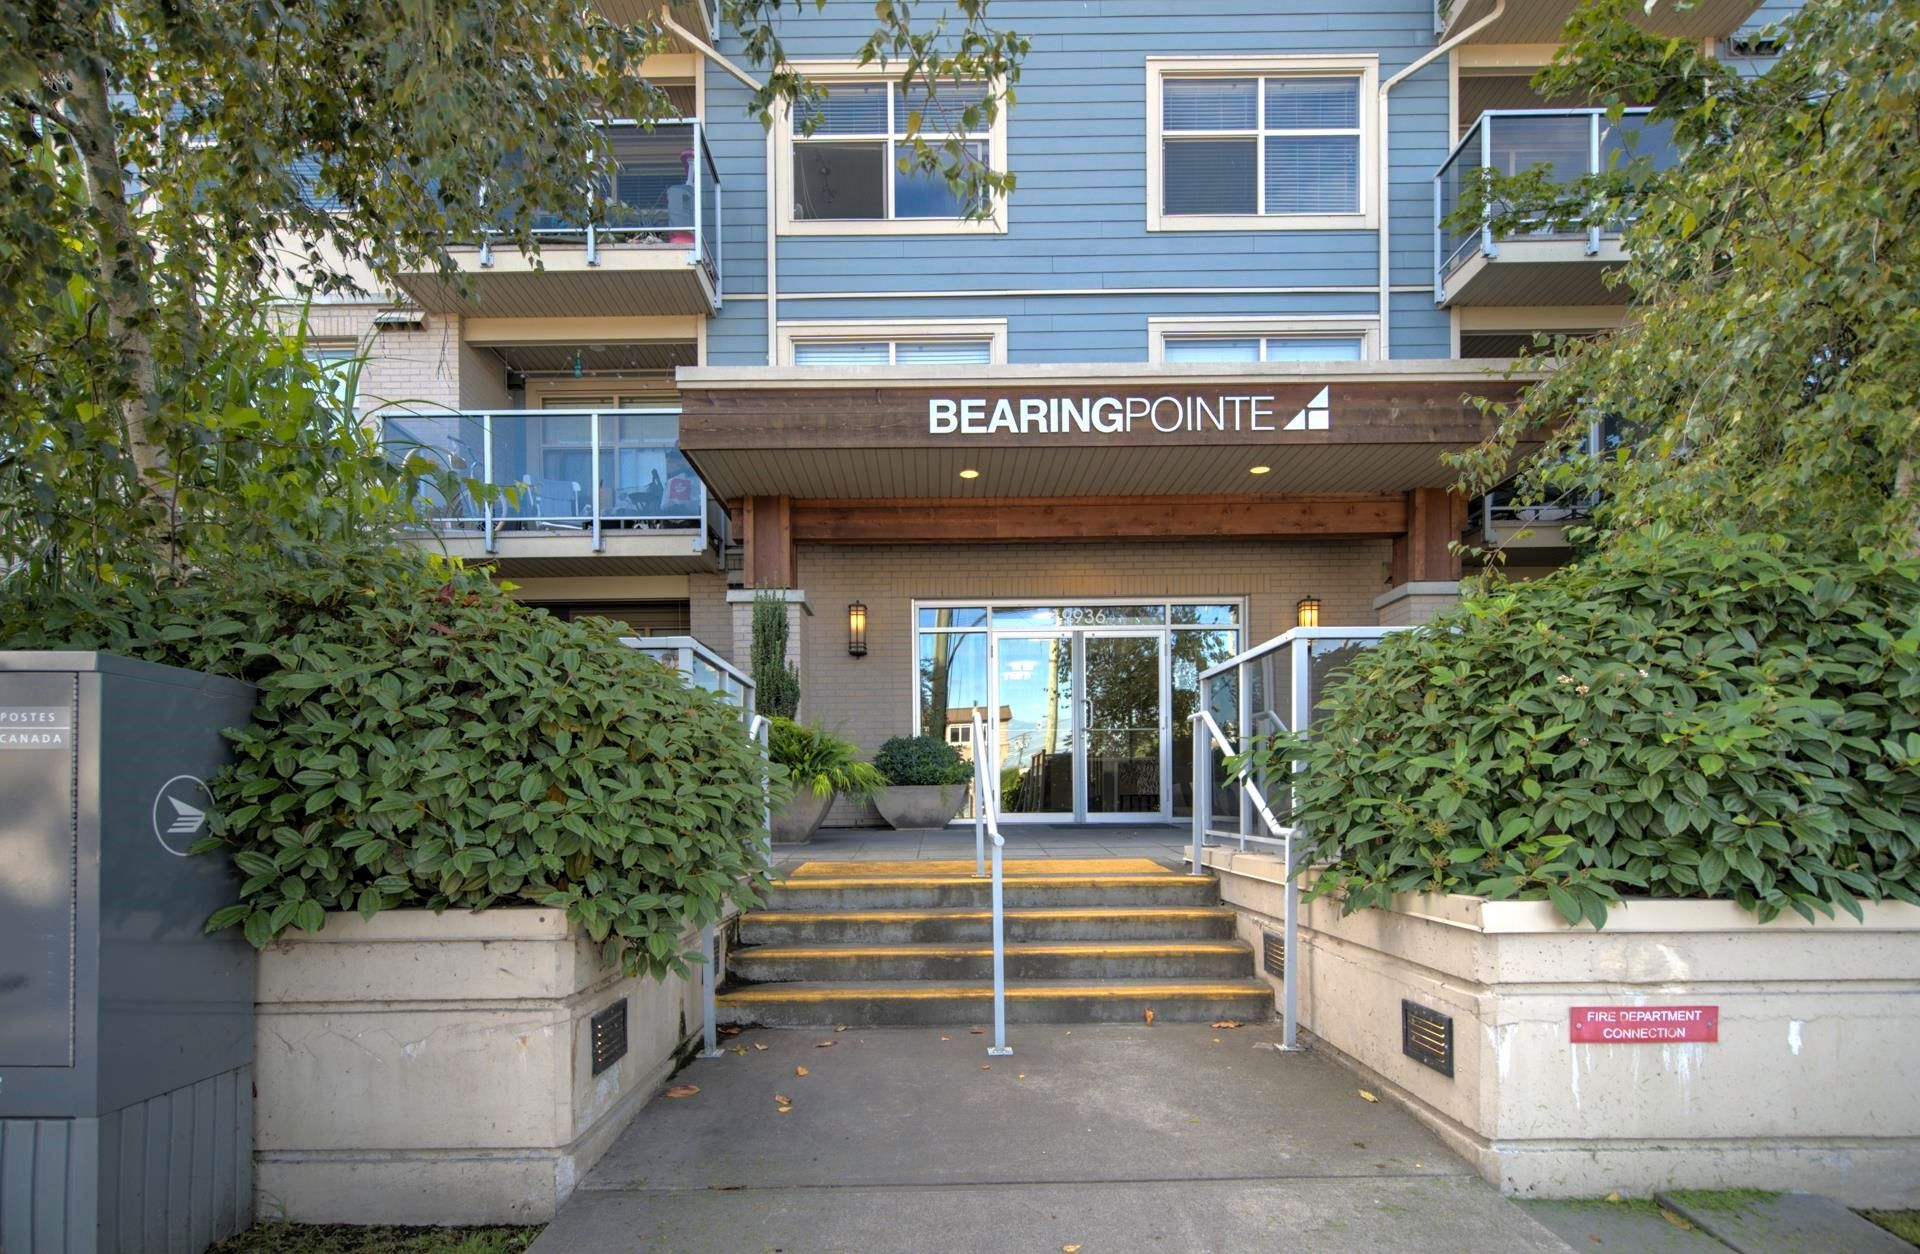 """Main Photo: 407 19936 56 Avenue in Langley: Langley City Condo for sale in """"Bearing Pointe"""" : MLS®# R2616051"""